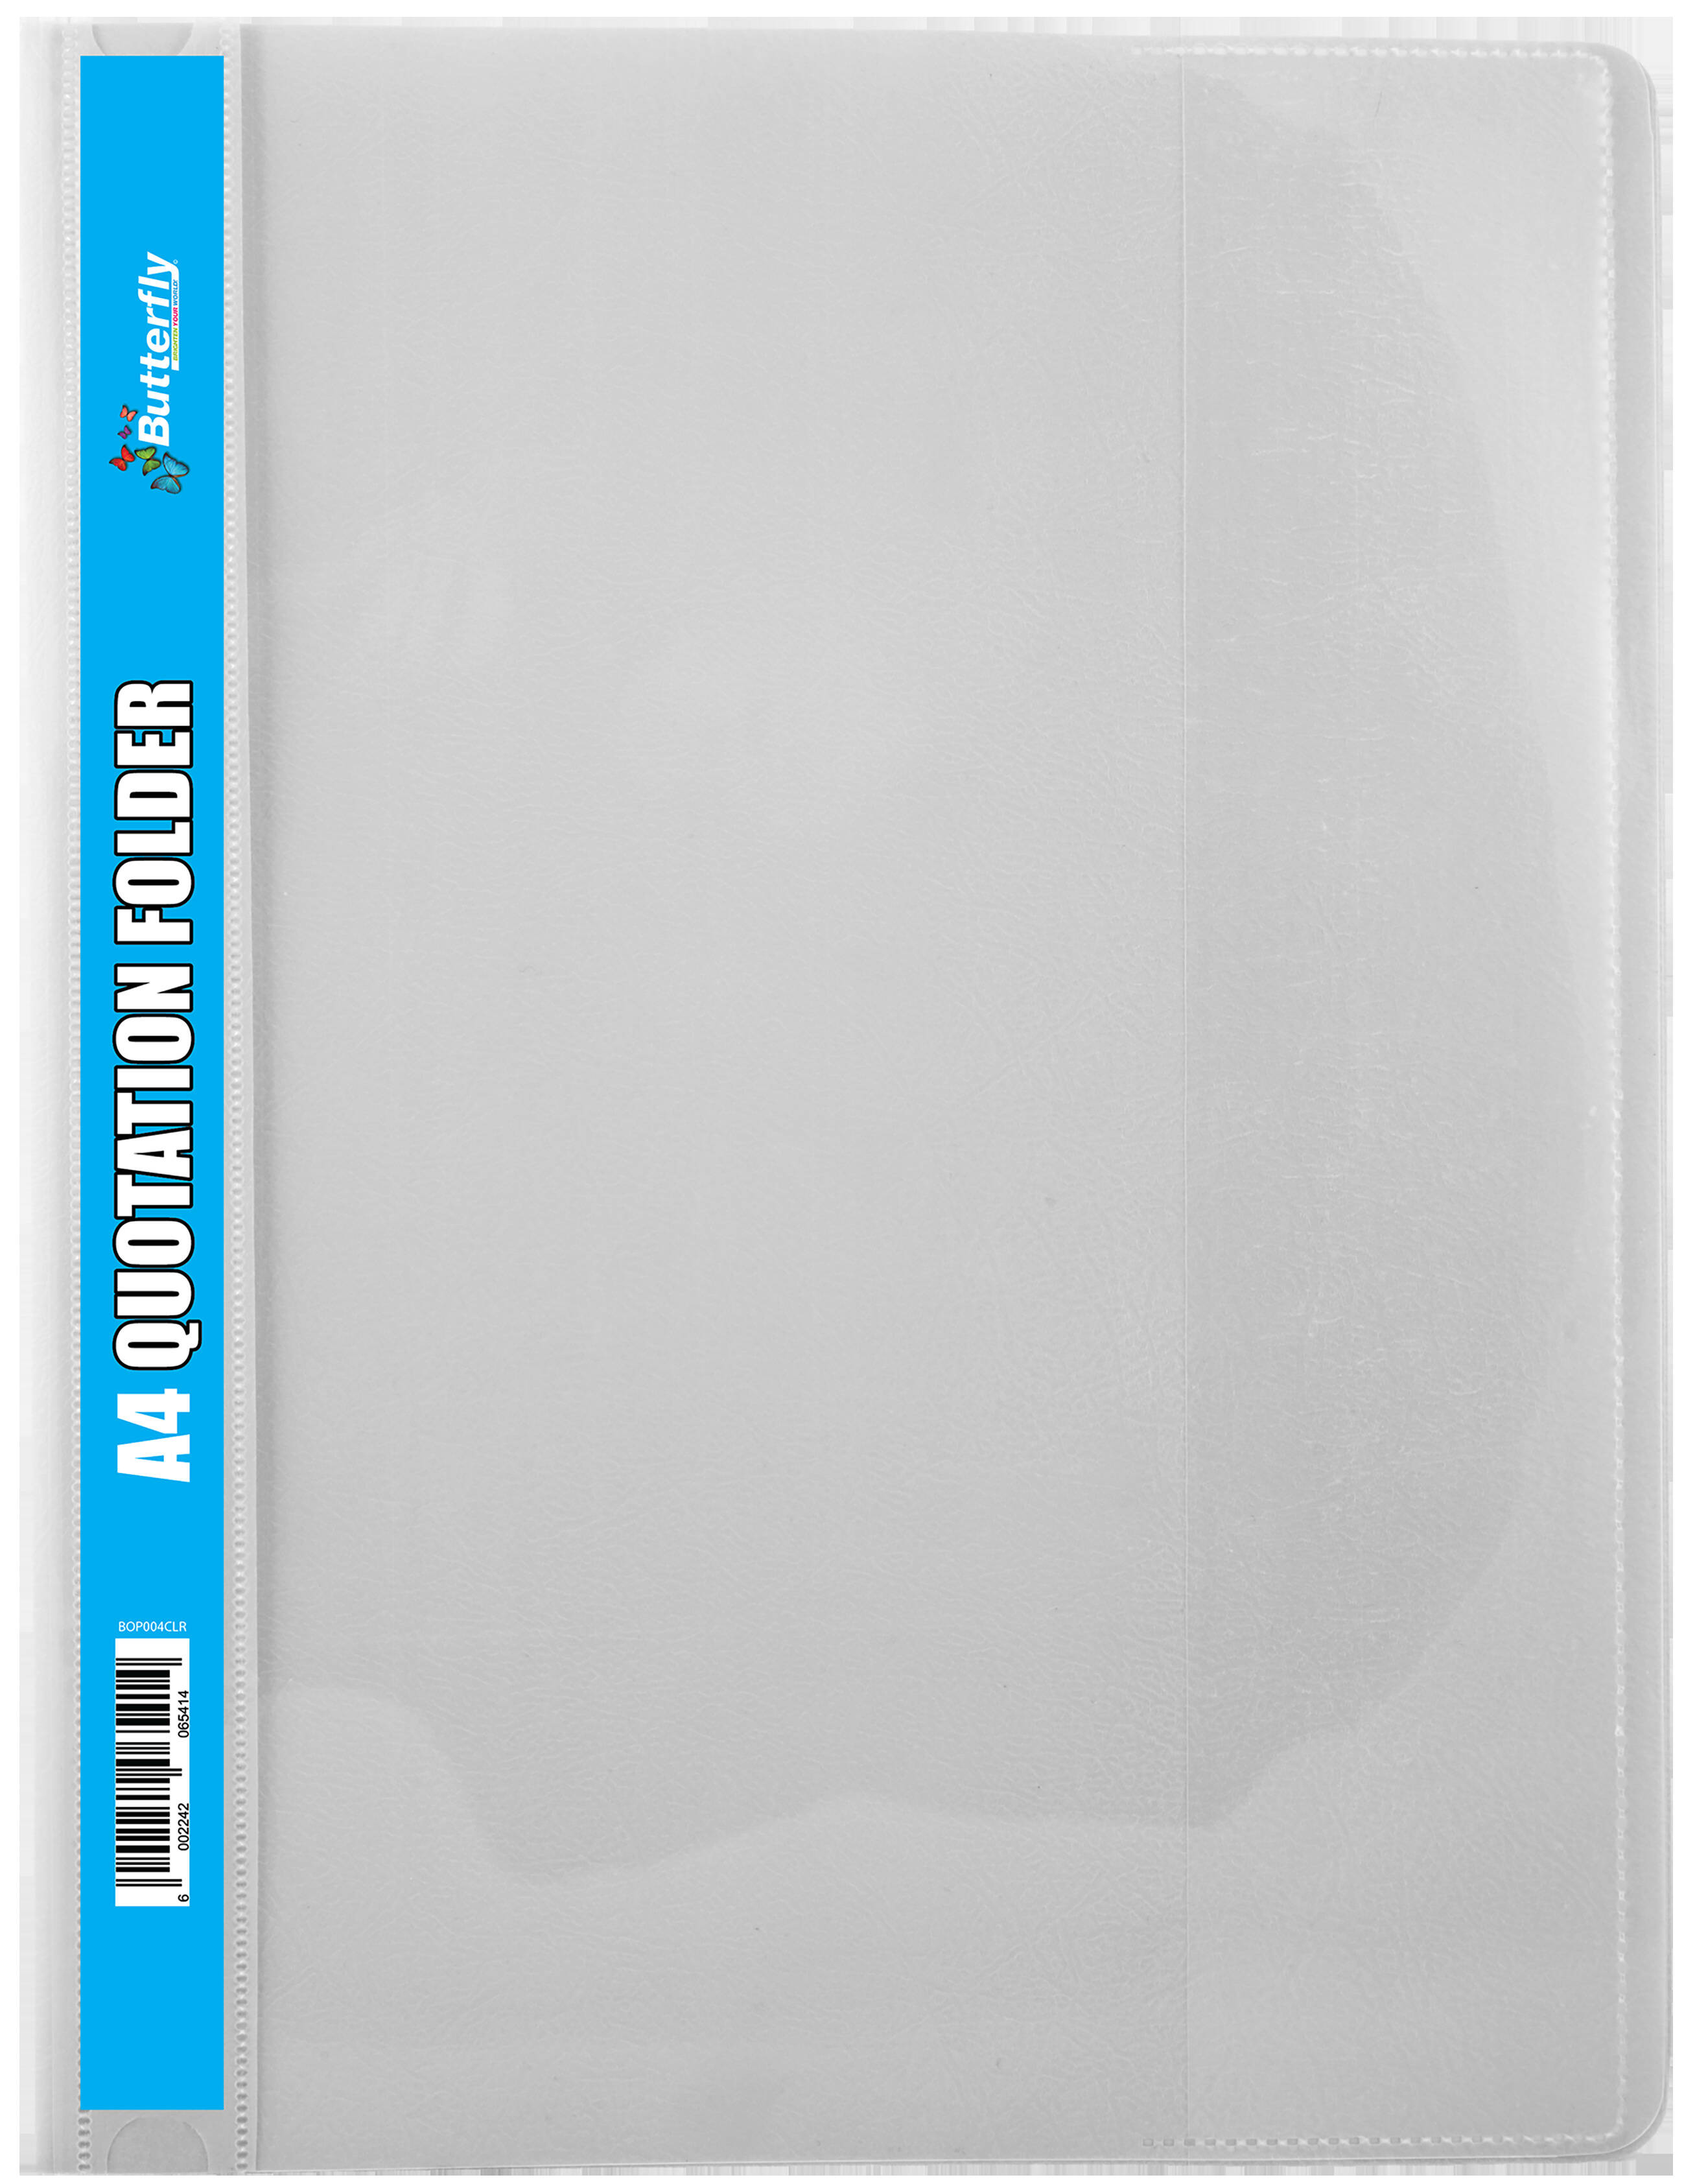 A4 Quotation Folders - 180 Micron - Clear